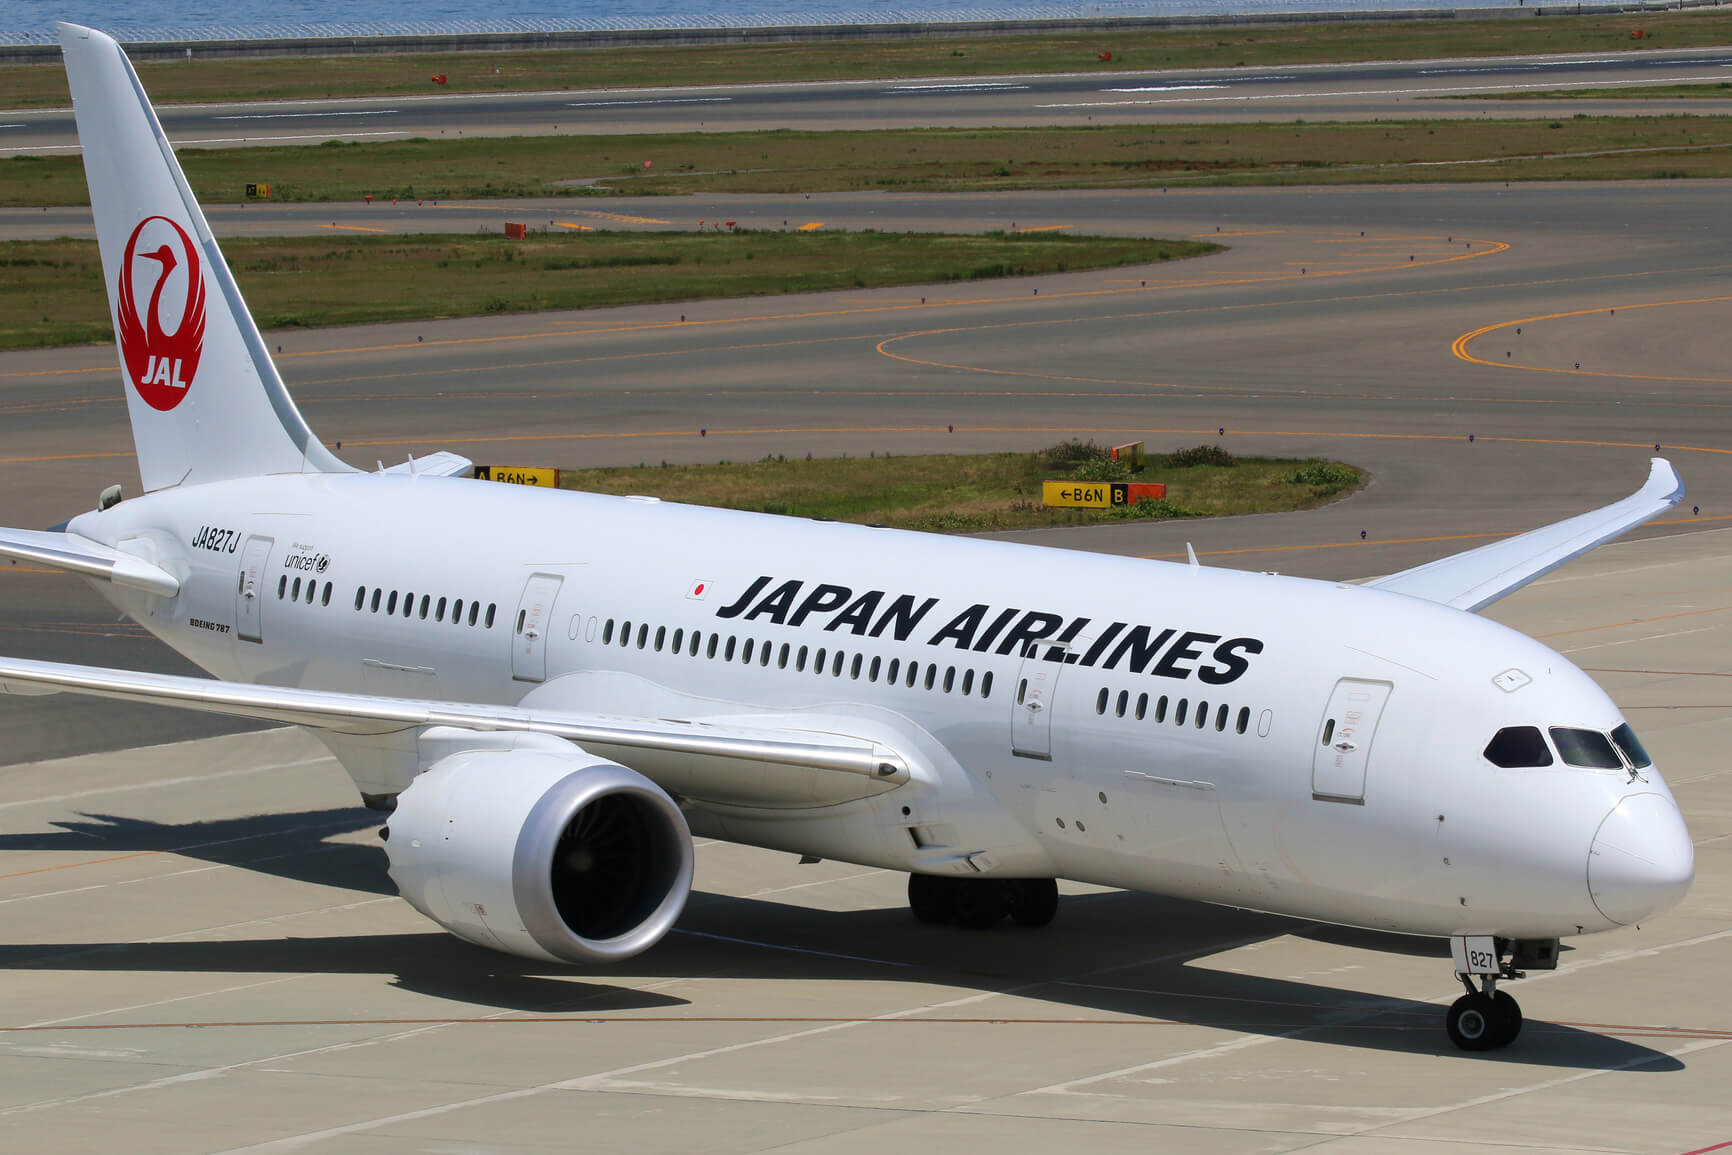 Japan Airlines awarded highest Skytrax 5-star airline rating